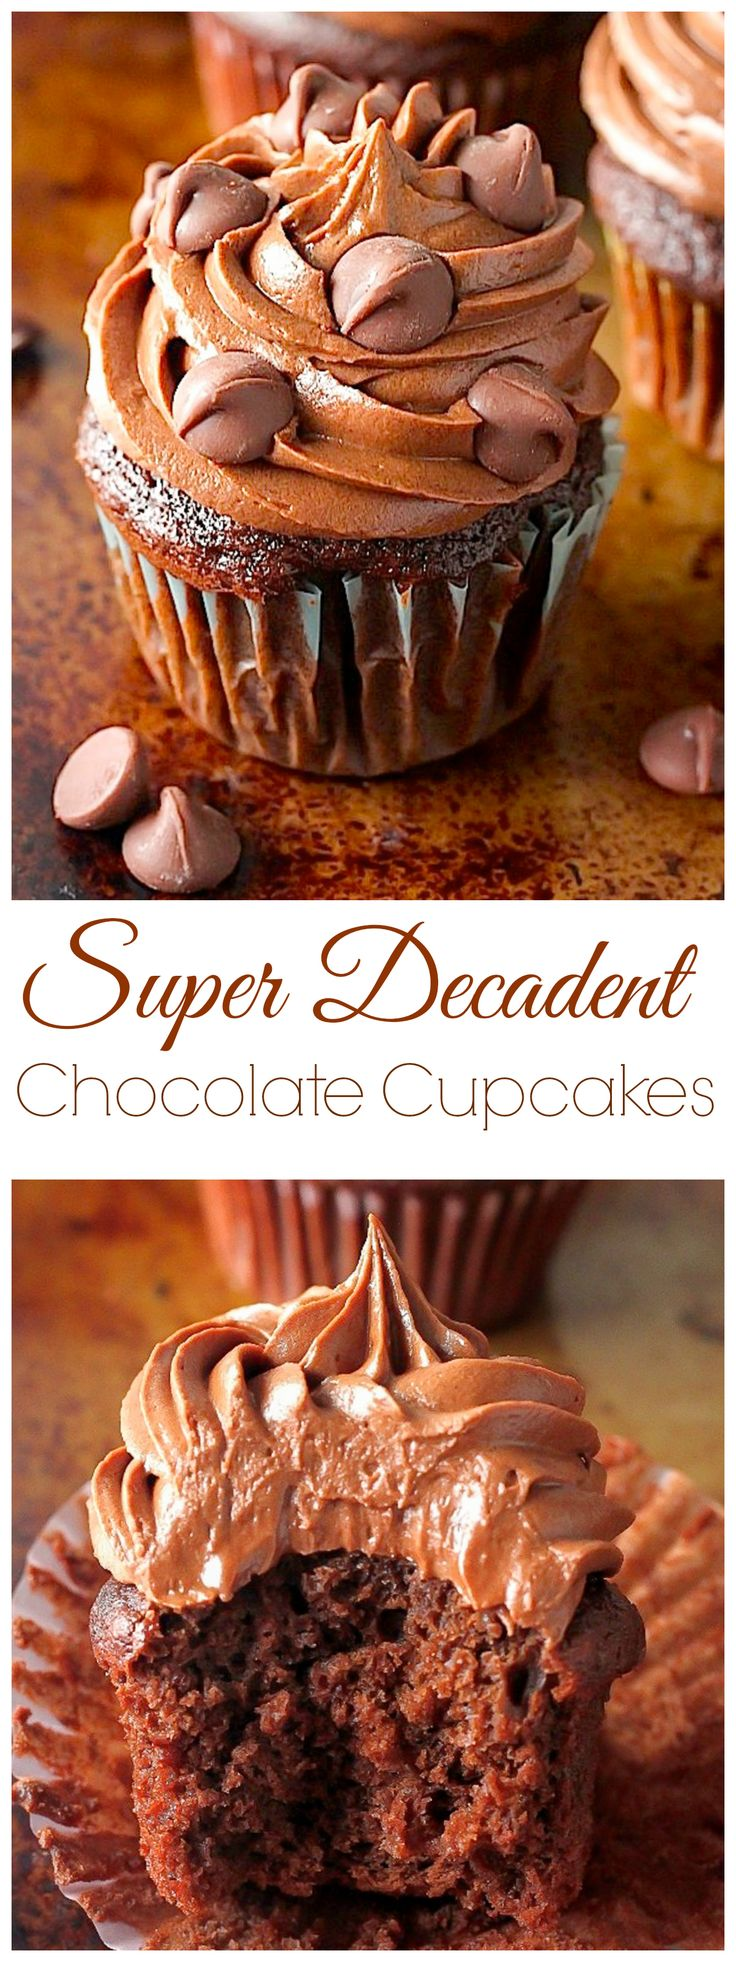 Super Decadent Chocolate Cupcakes - These Homemade Chocolate Cupcakes have RAVE reviews in the comments and are so easy to make! We LOVE these.                                                                                                                                                                                 More